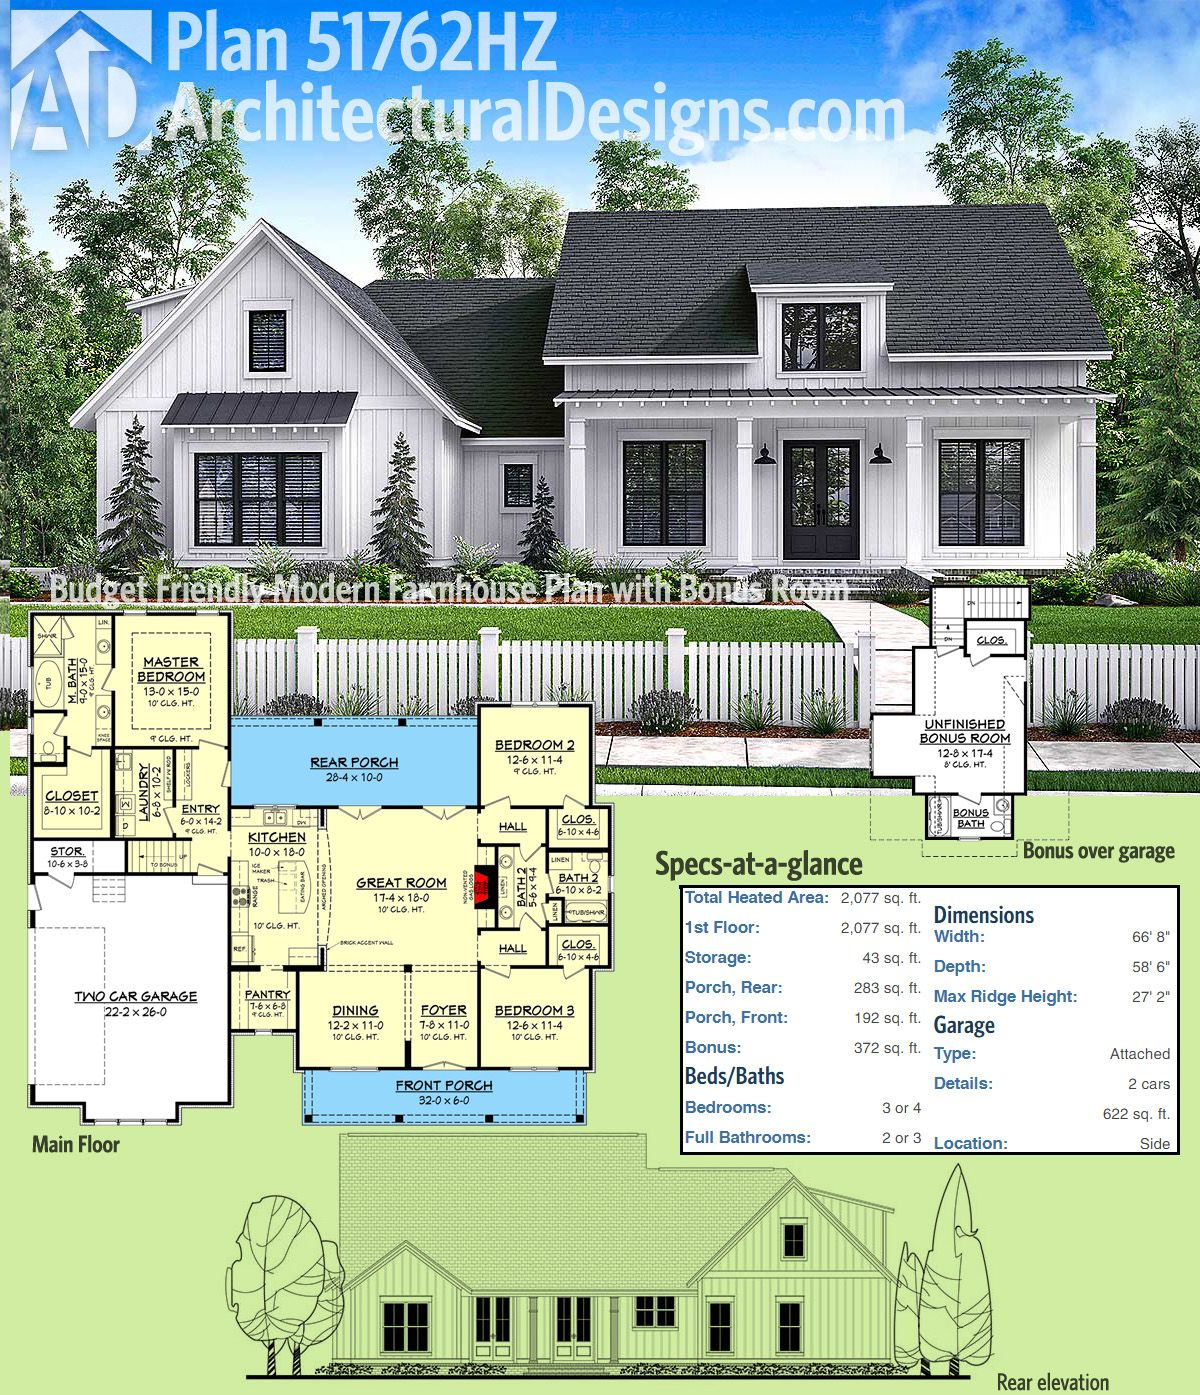 Architectural Designs Modern Farmhouse Plan 51762HZ Gives You Just Over 2000 Square Feet Of Heated Living